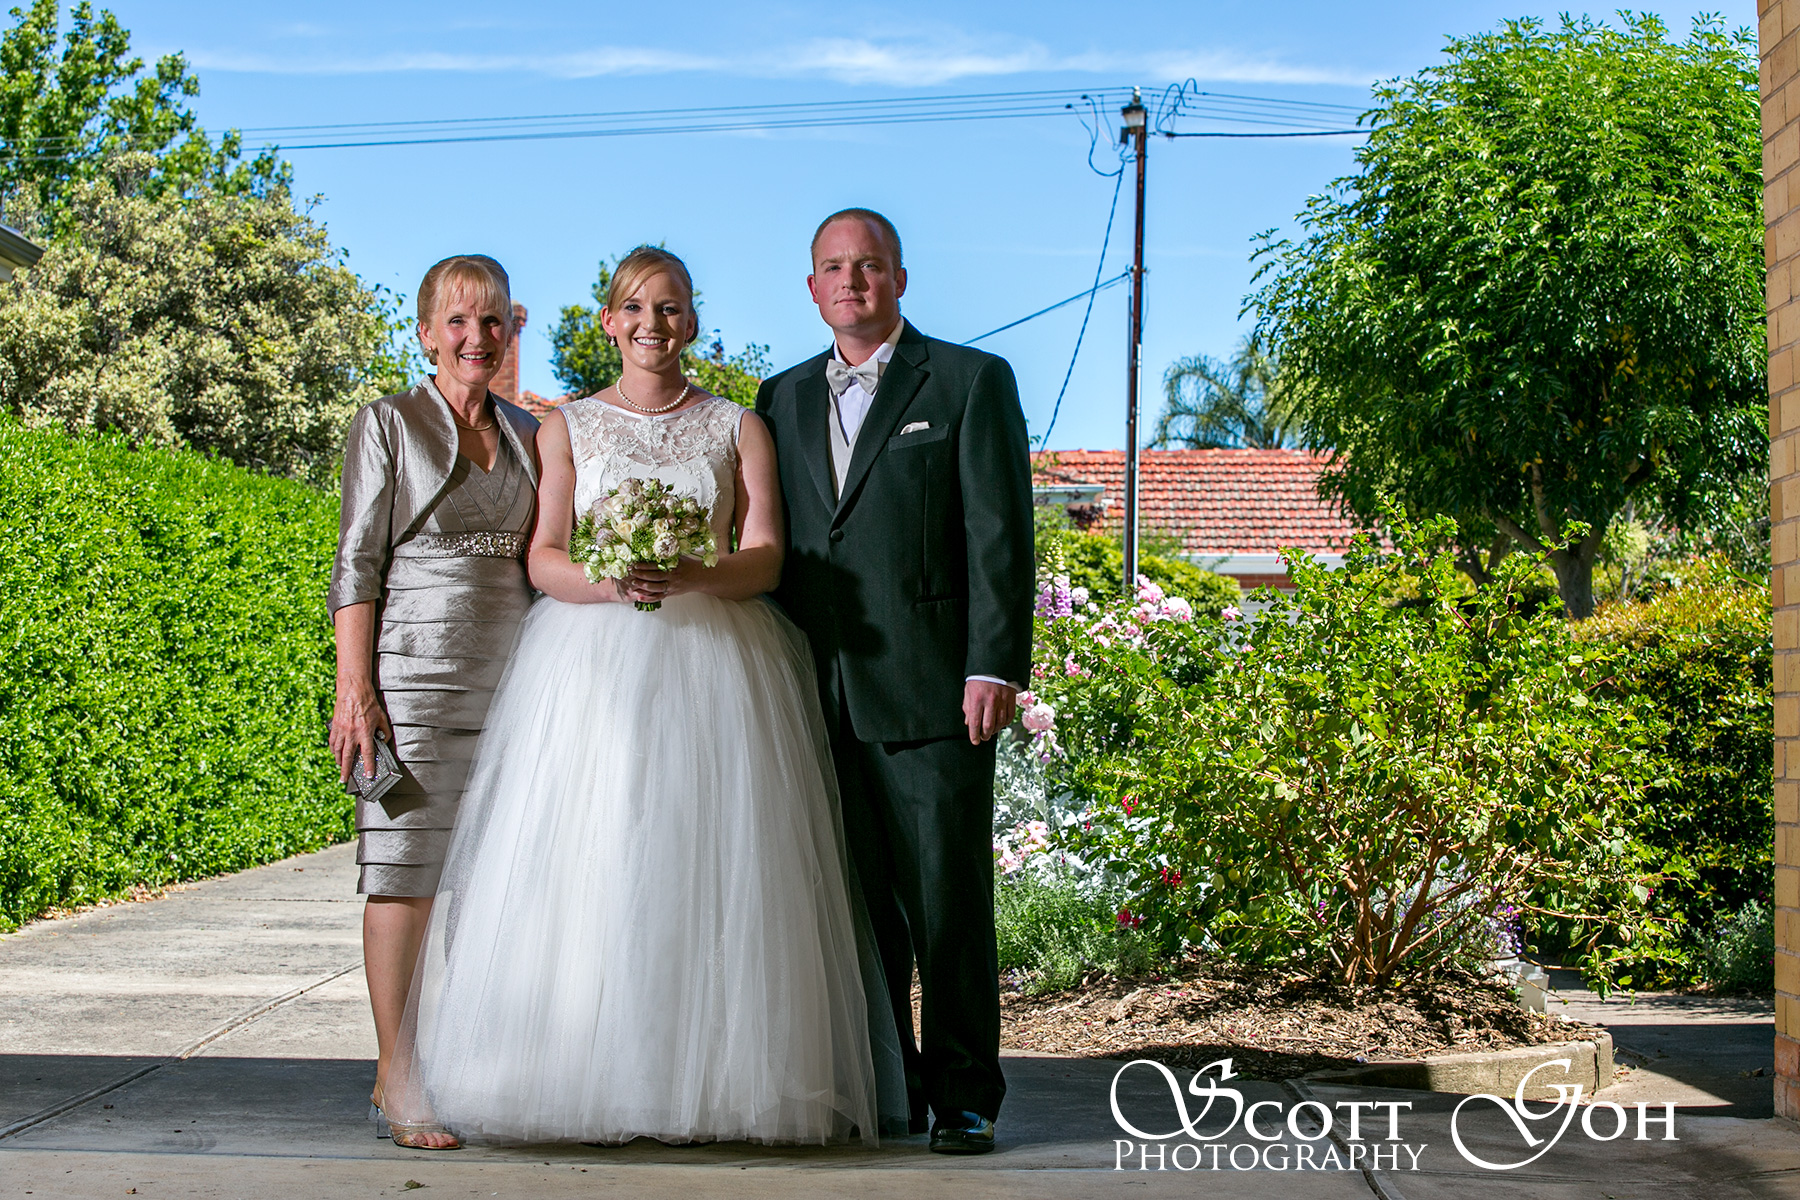 Wedding portrait with quadra